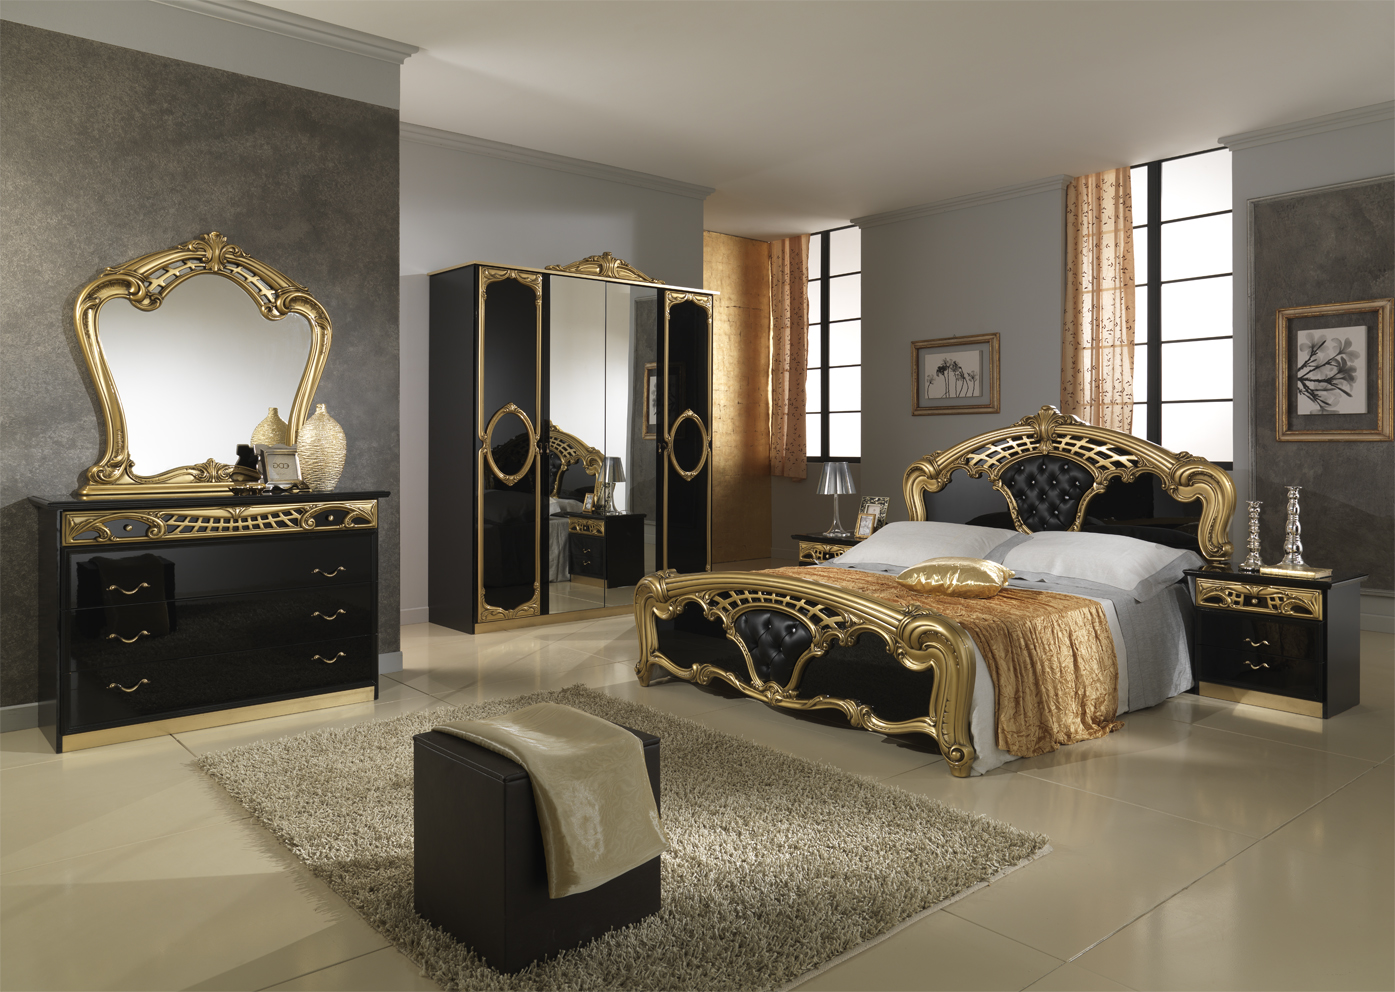 wonderful black and gold bedroom ideas atmosphere life movie it s a clip art enjoy happy day george bailey meme apppie org